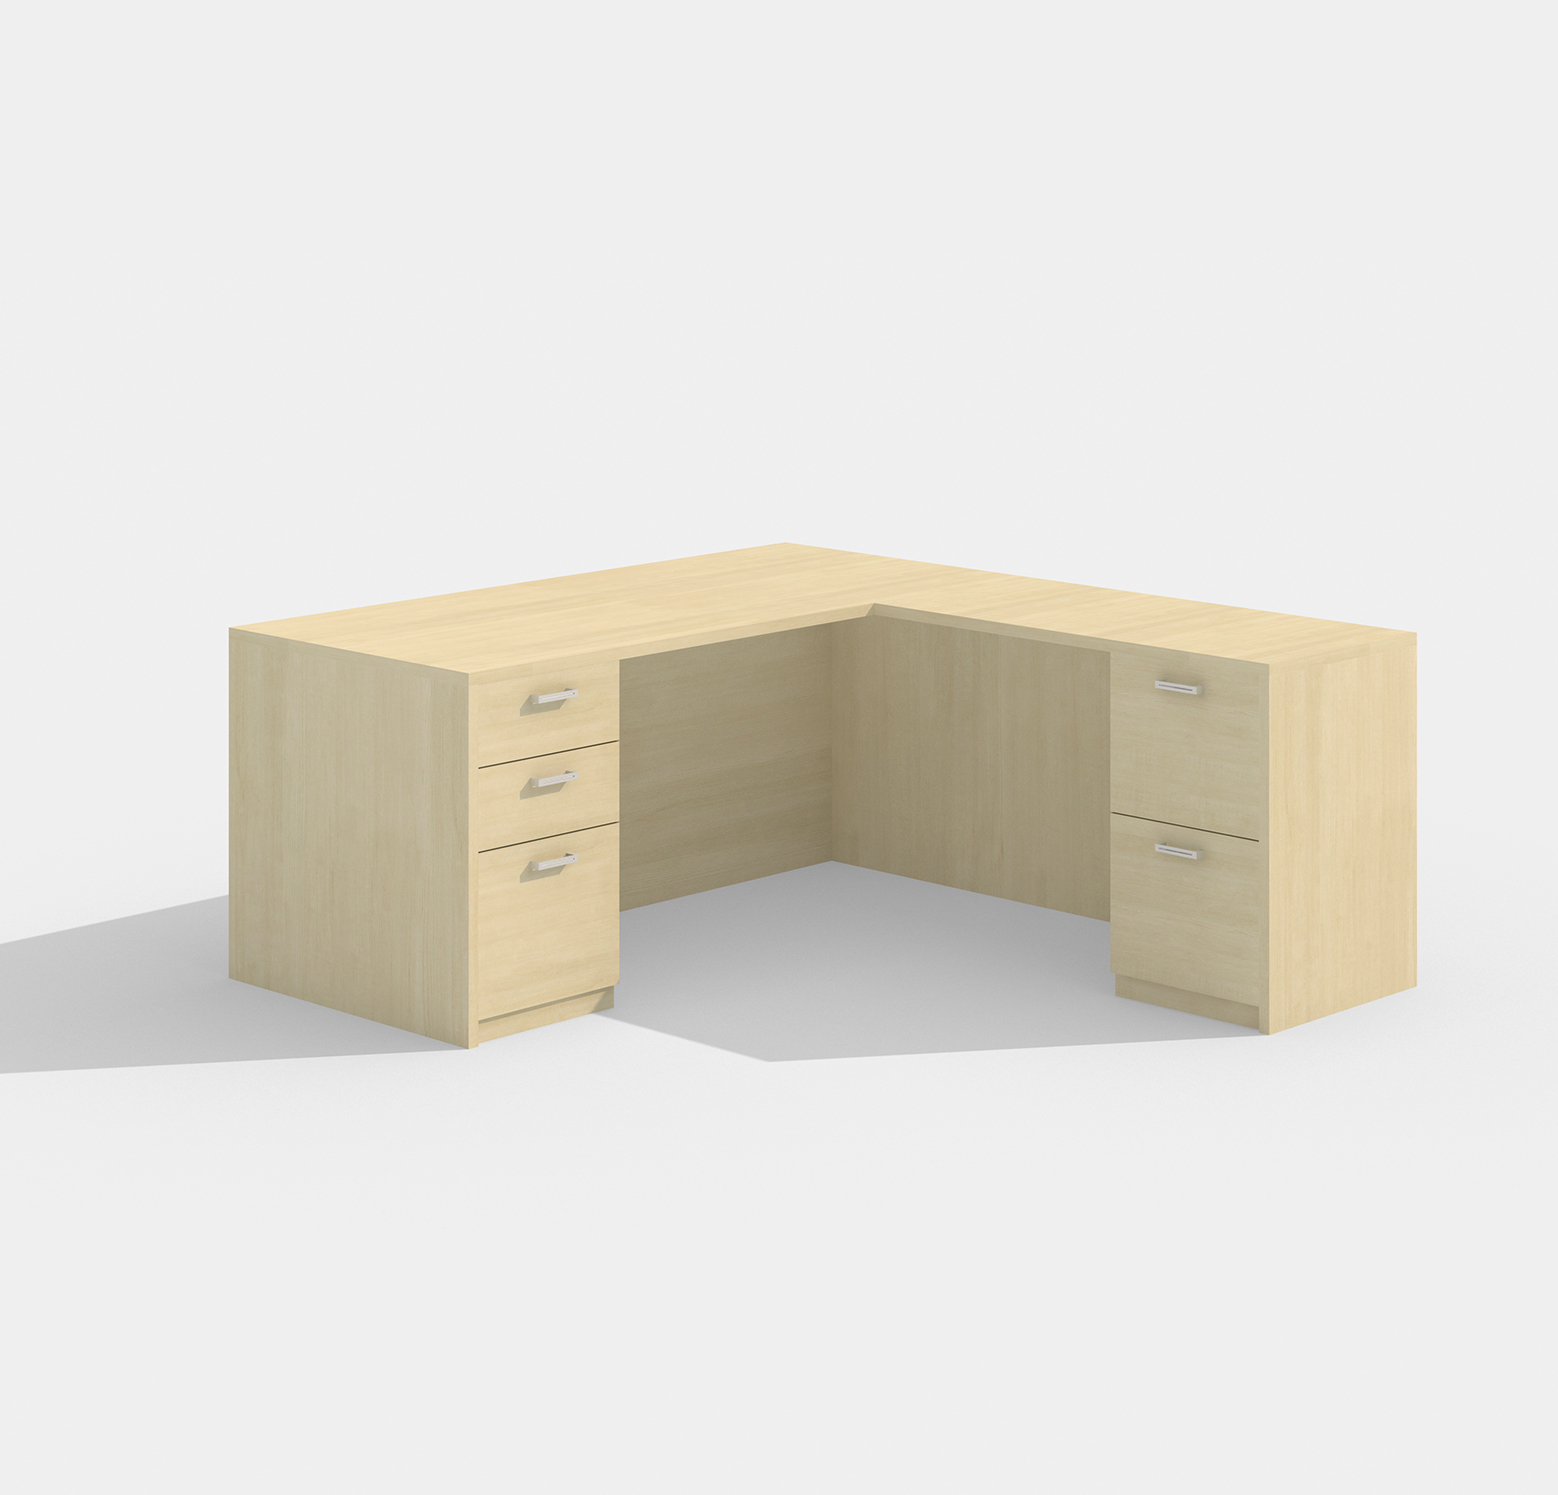 amber l-shaped desk am-313n with maple finish